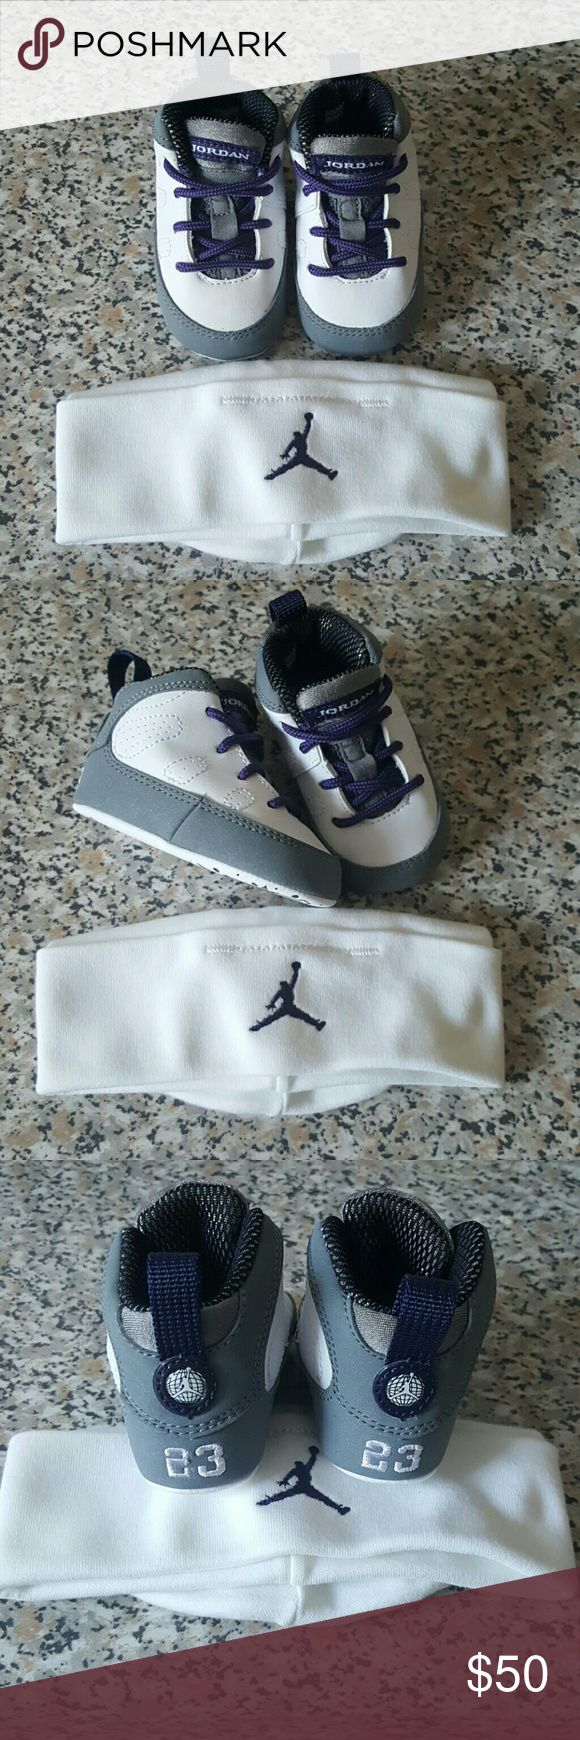 JORDAN'S for NEWBORNS sneakers / Baby Hat included Baby Jordan's white and grey/ purple Brand new never worn. Forgot I even had them. Makes a good gift for a baby shower or a new addition to the family..Negotiation in price a bit if bundling..Thank you hope this helps someone.. Jordan Shoes Sneakers